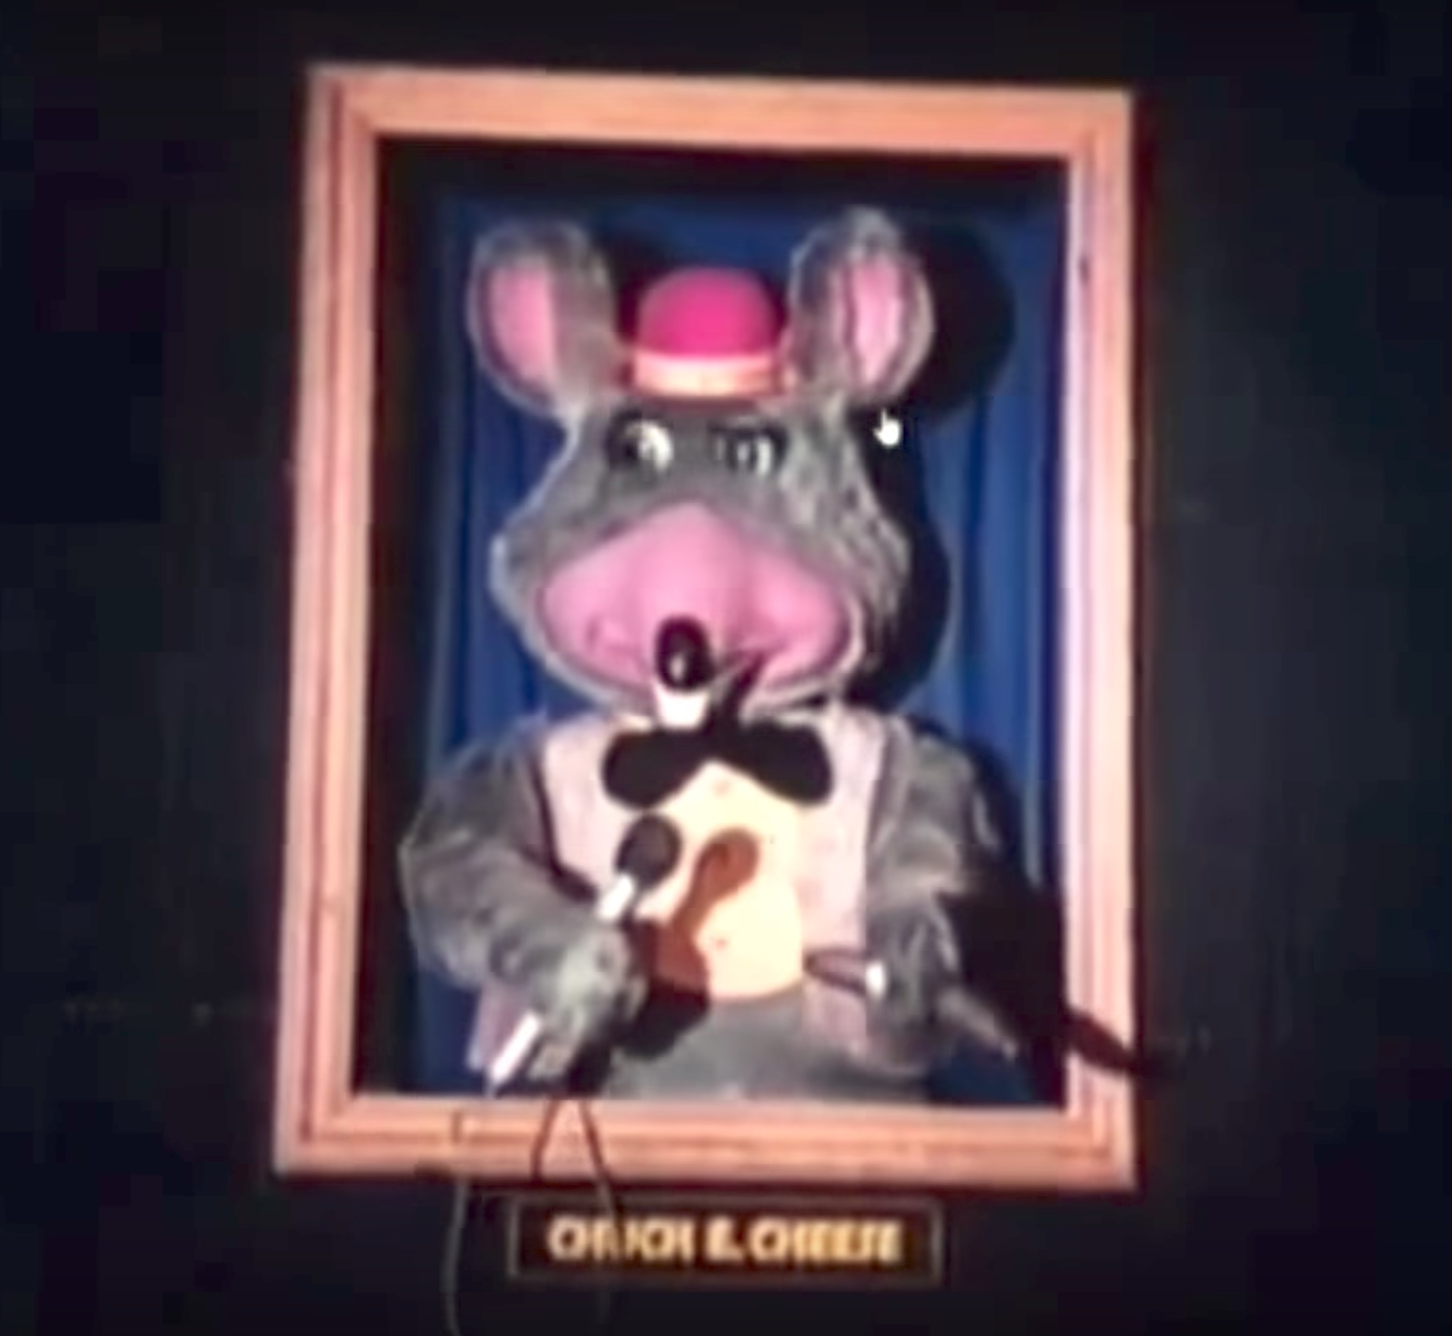 0631c5452 A framed original Chuck E. Cheese animatronic from 1977. Image: The  Rock-afire Explosion/Ryan Woirol/YouTube.